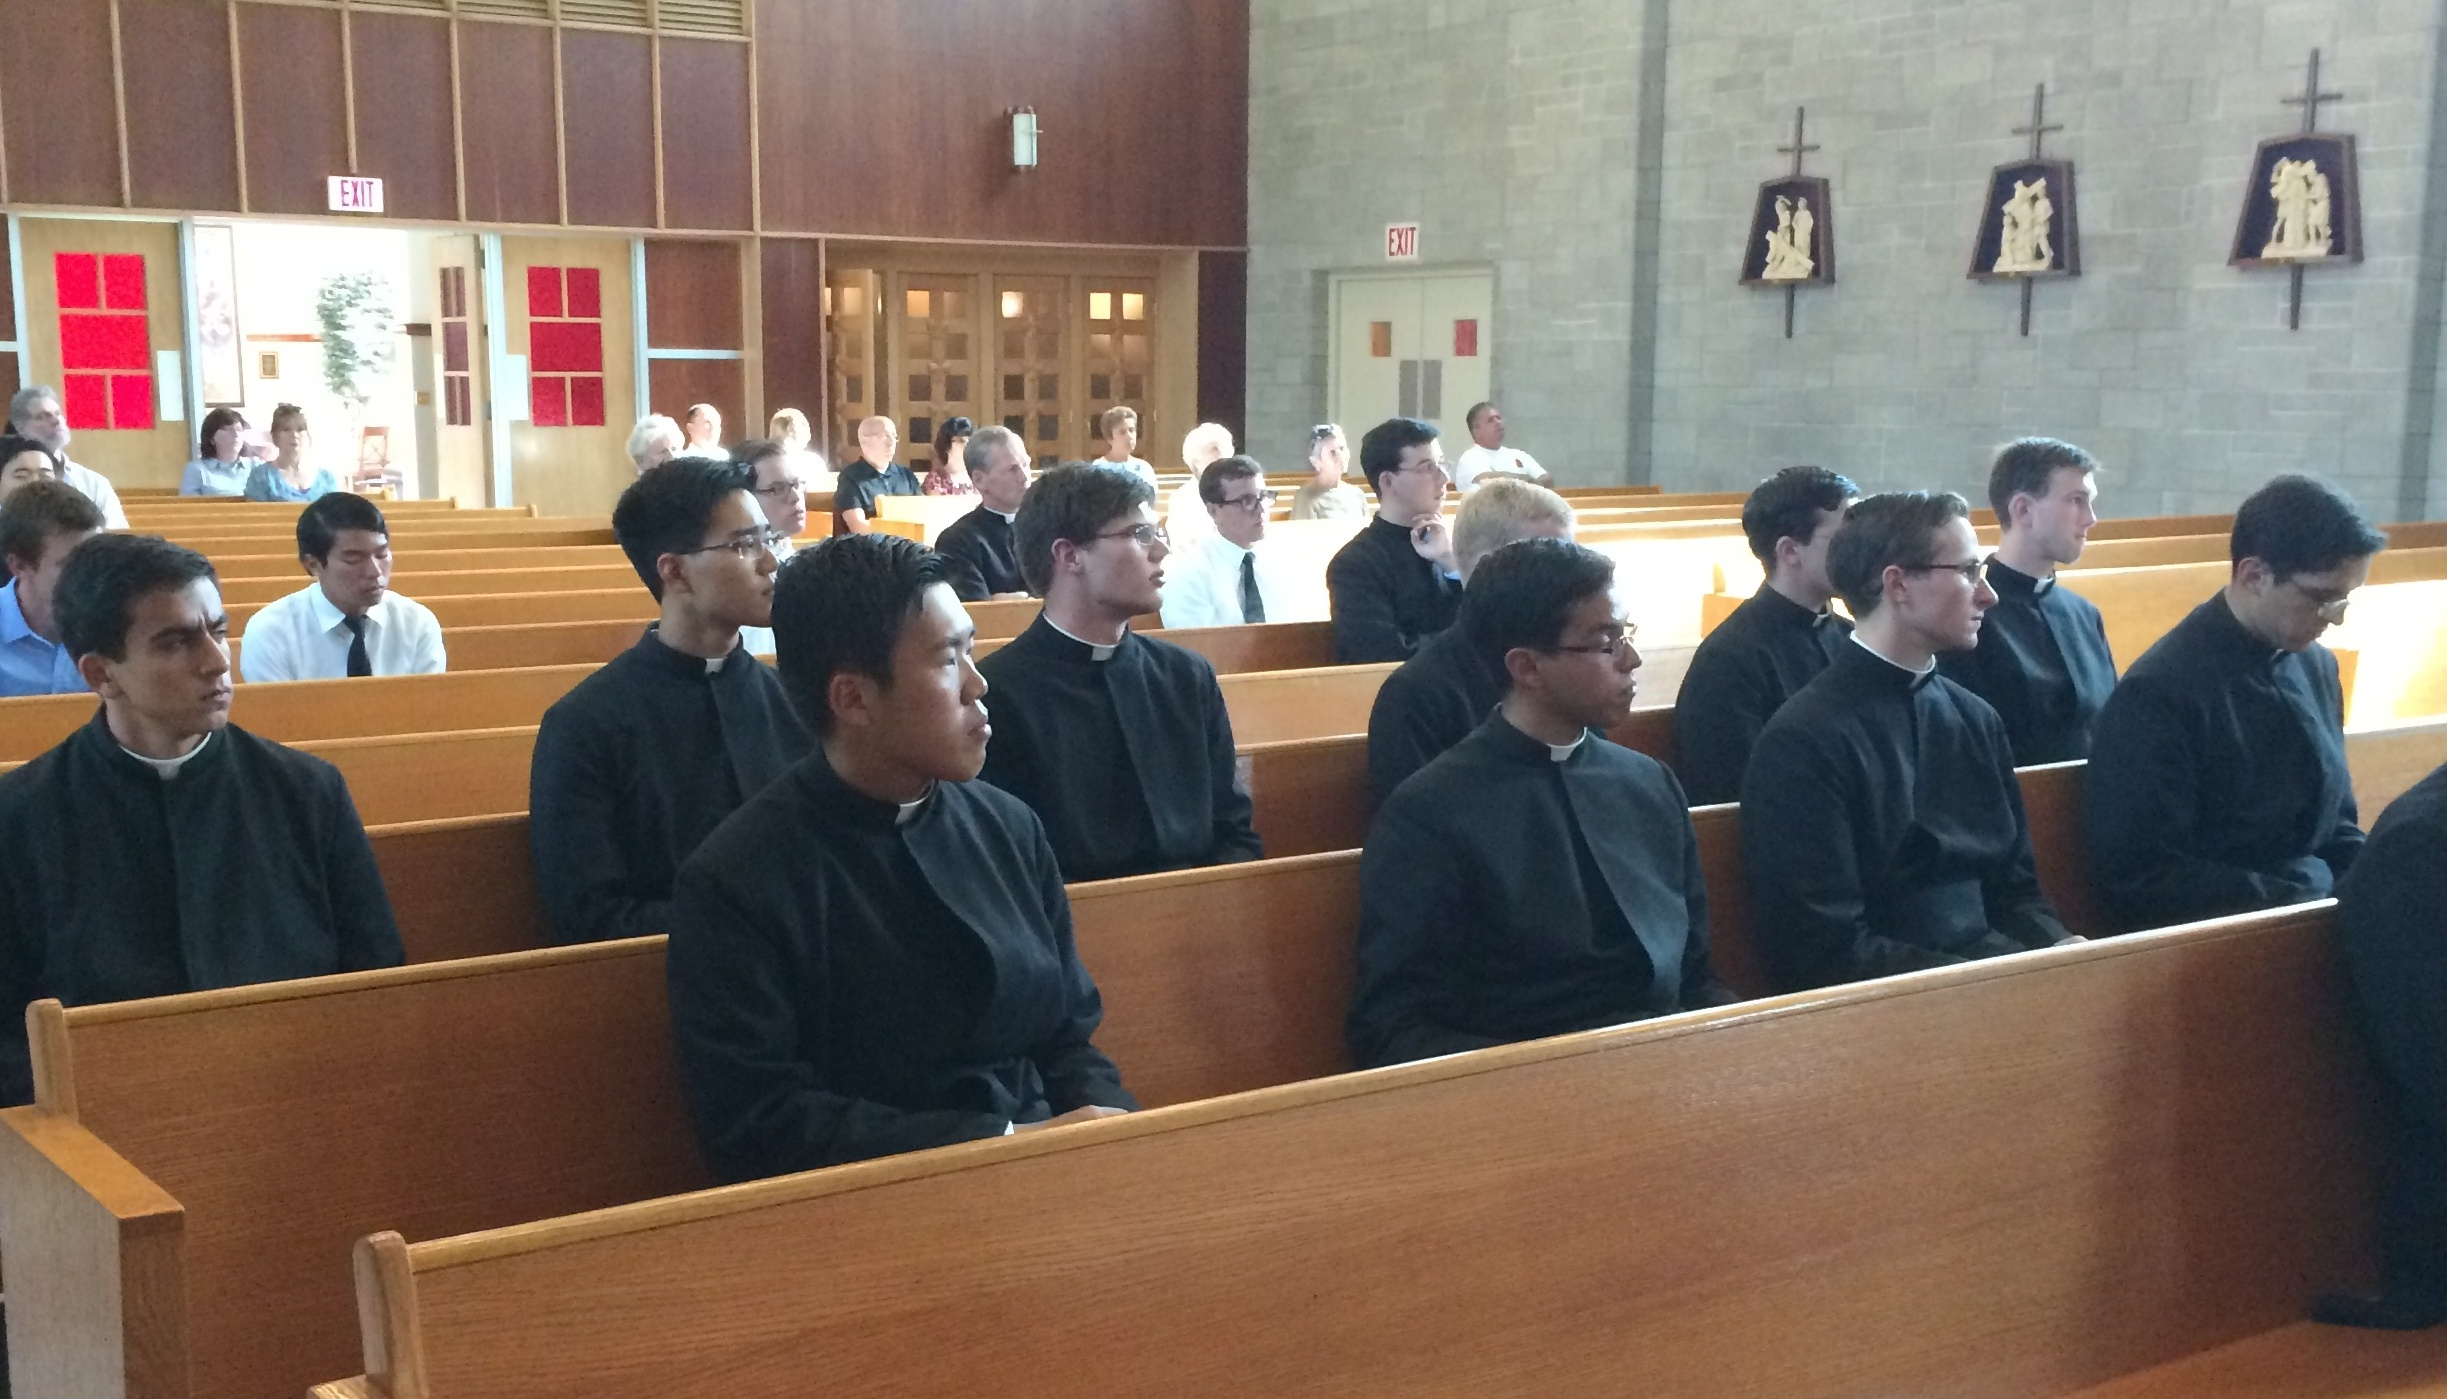 Seminarians from Cheshire in prayer